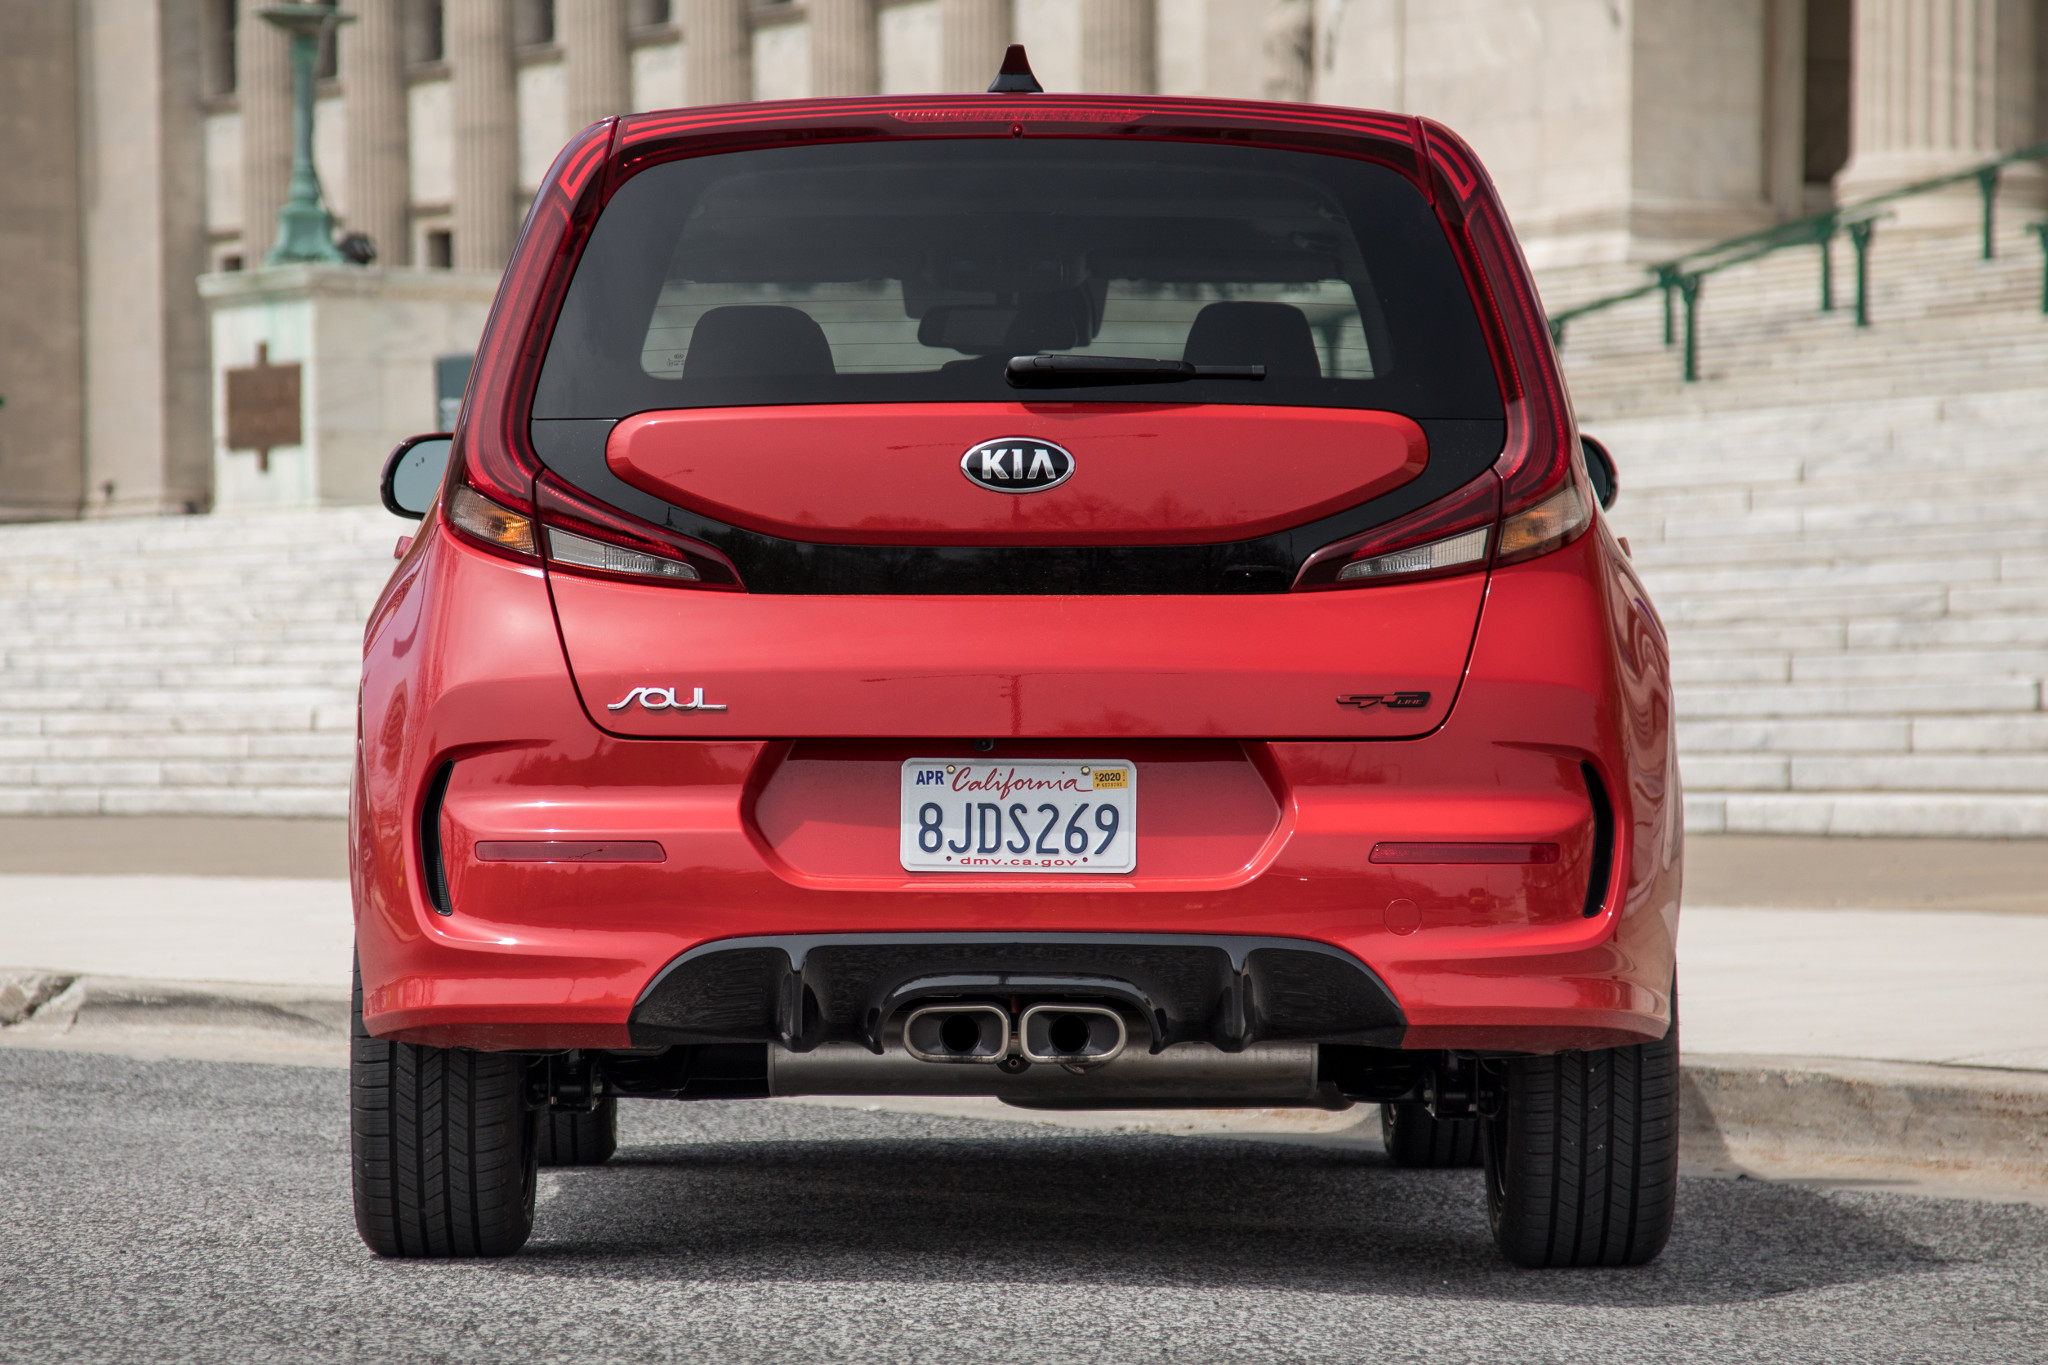 2020 Kia Soul Review: Same Funky Formula, Just Better | News